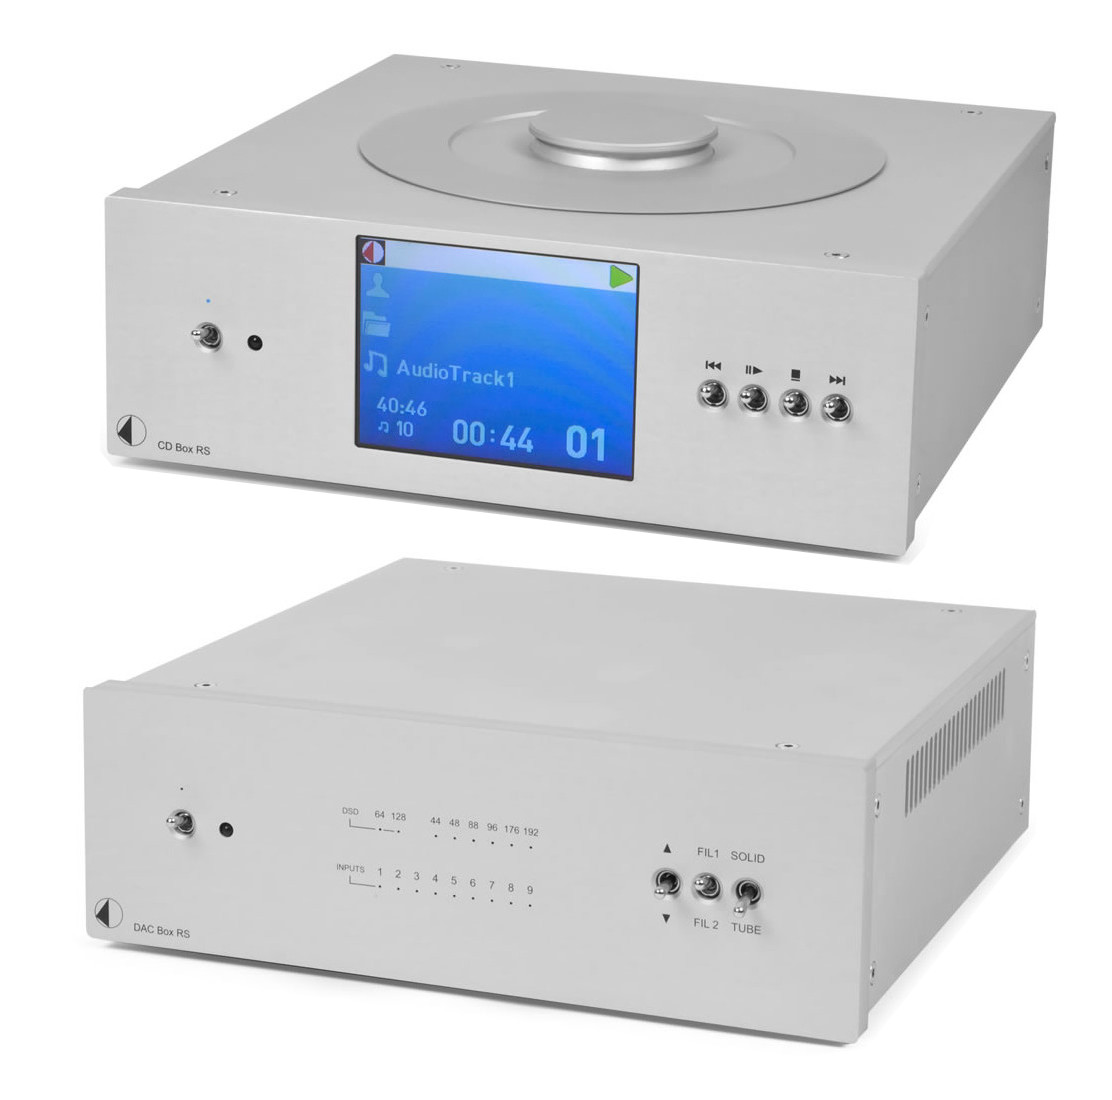 Pro-Ject CD Box + DAC Box RS Superpack silber